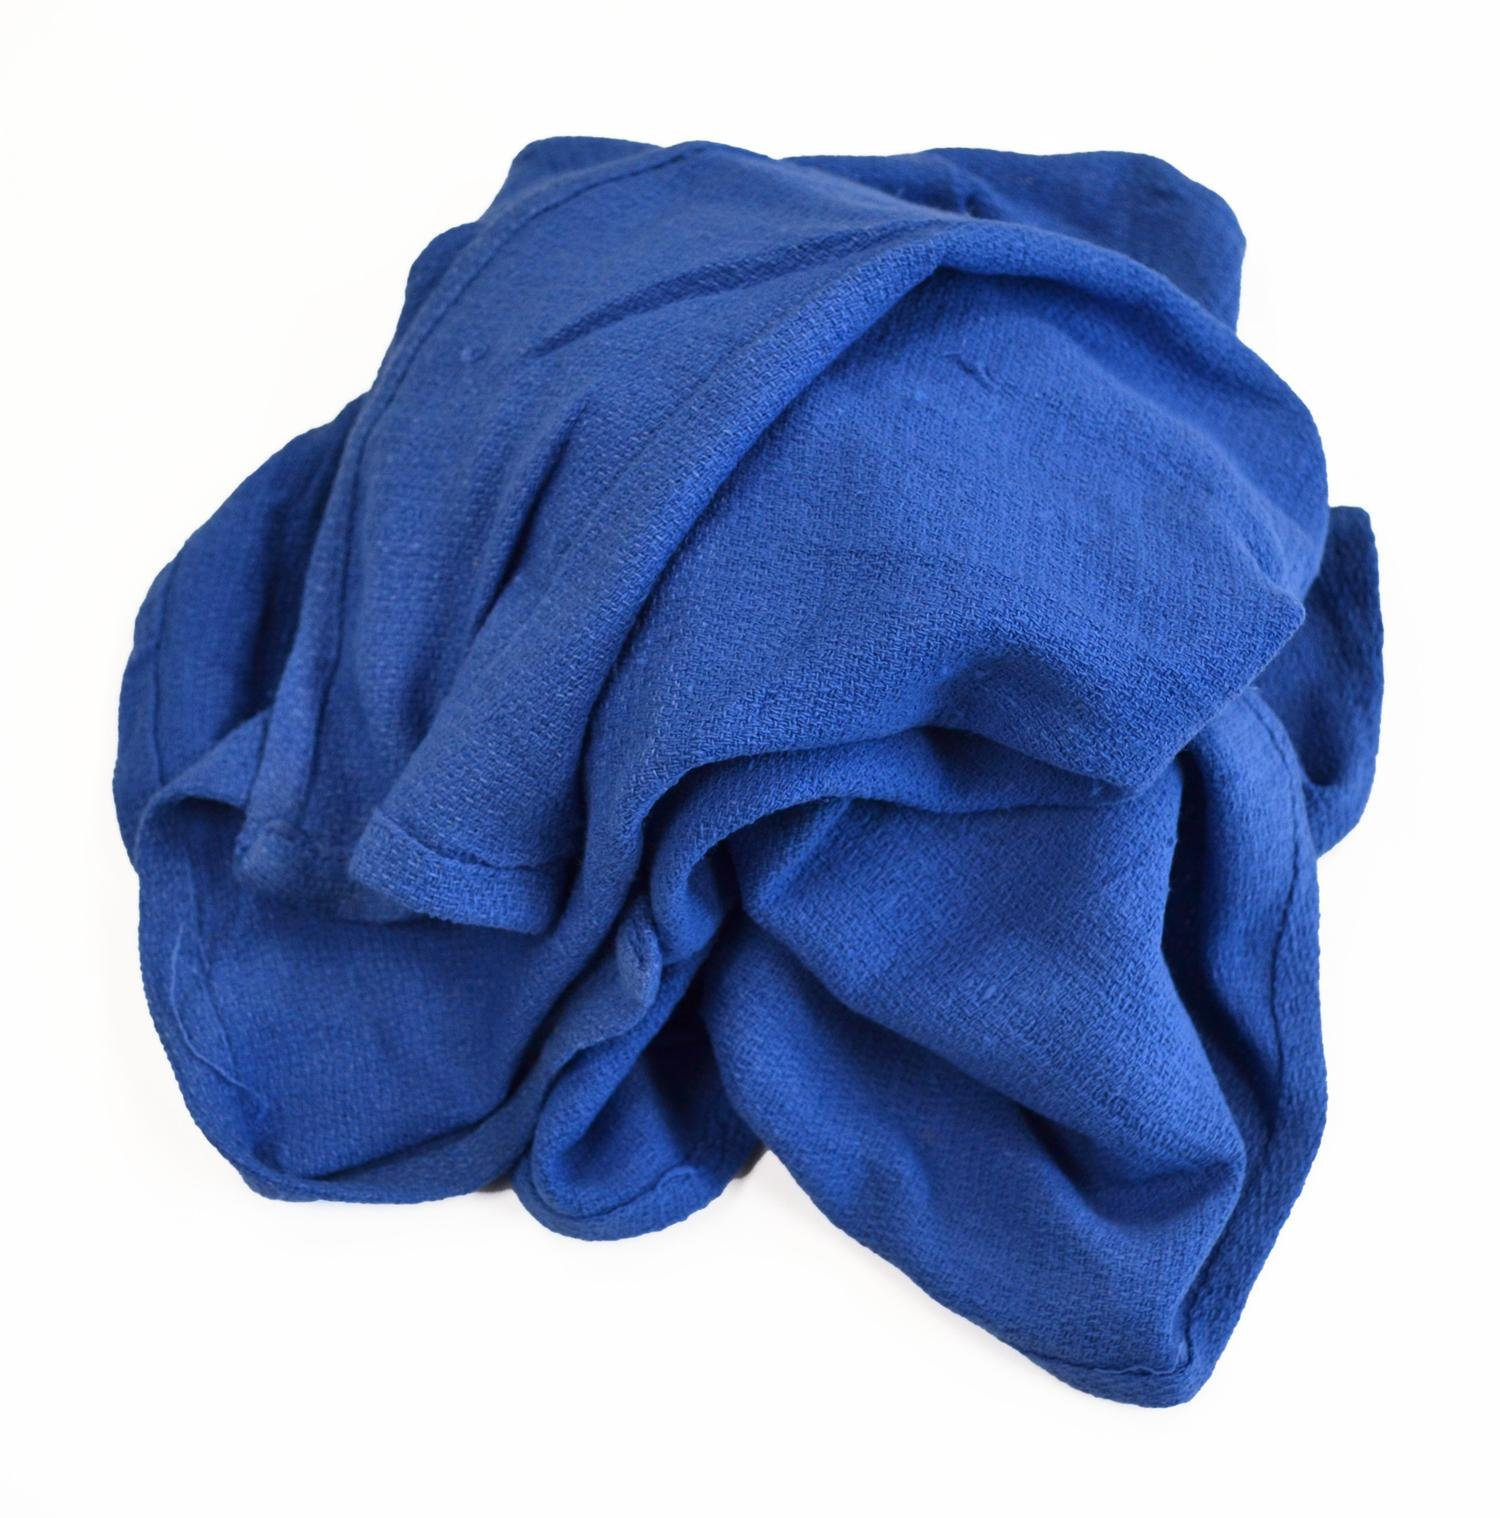 Pro-Clean Basics A99404 Reclaimed Huck or Surgical Towels